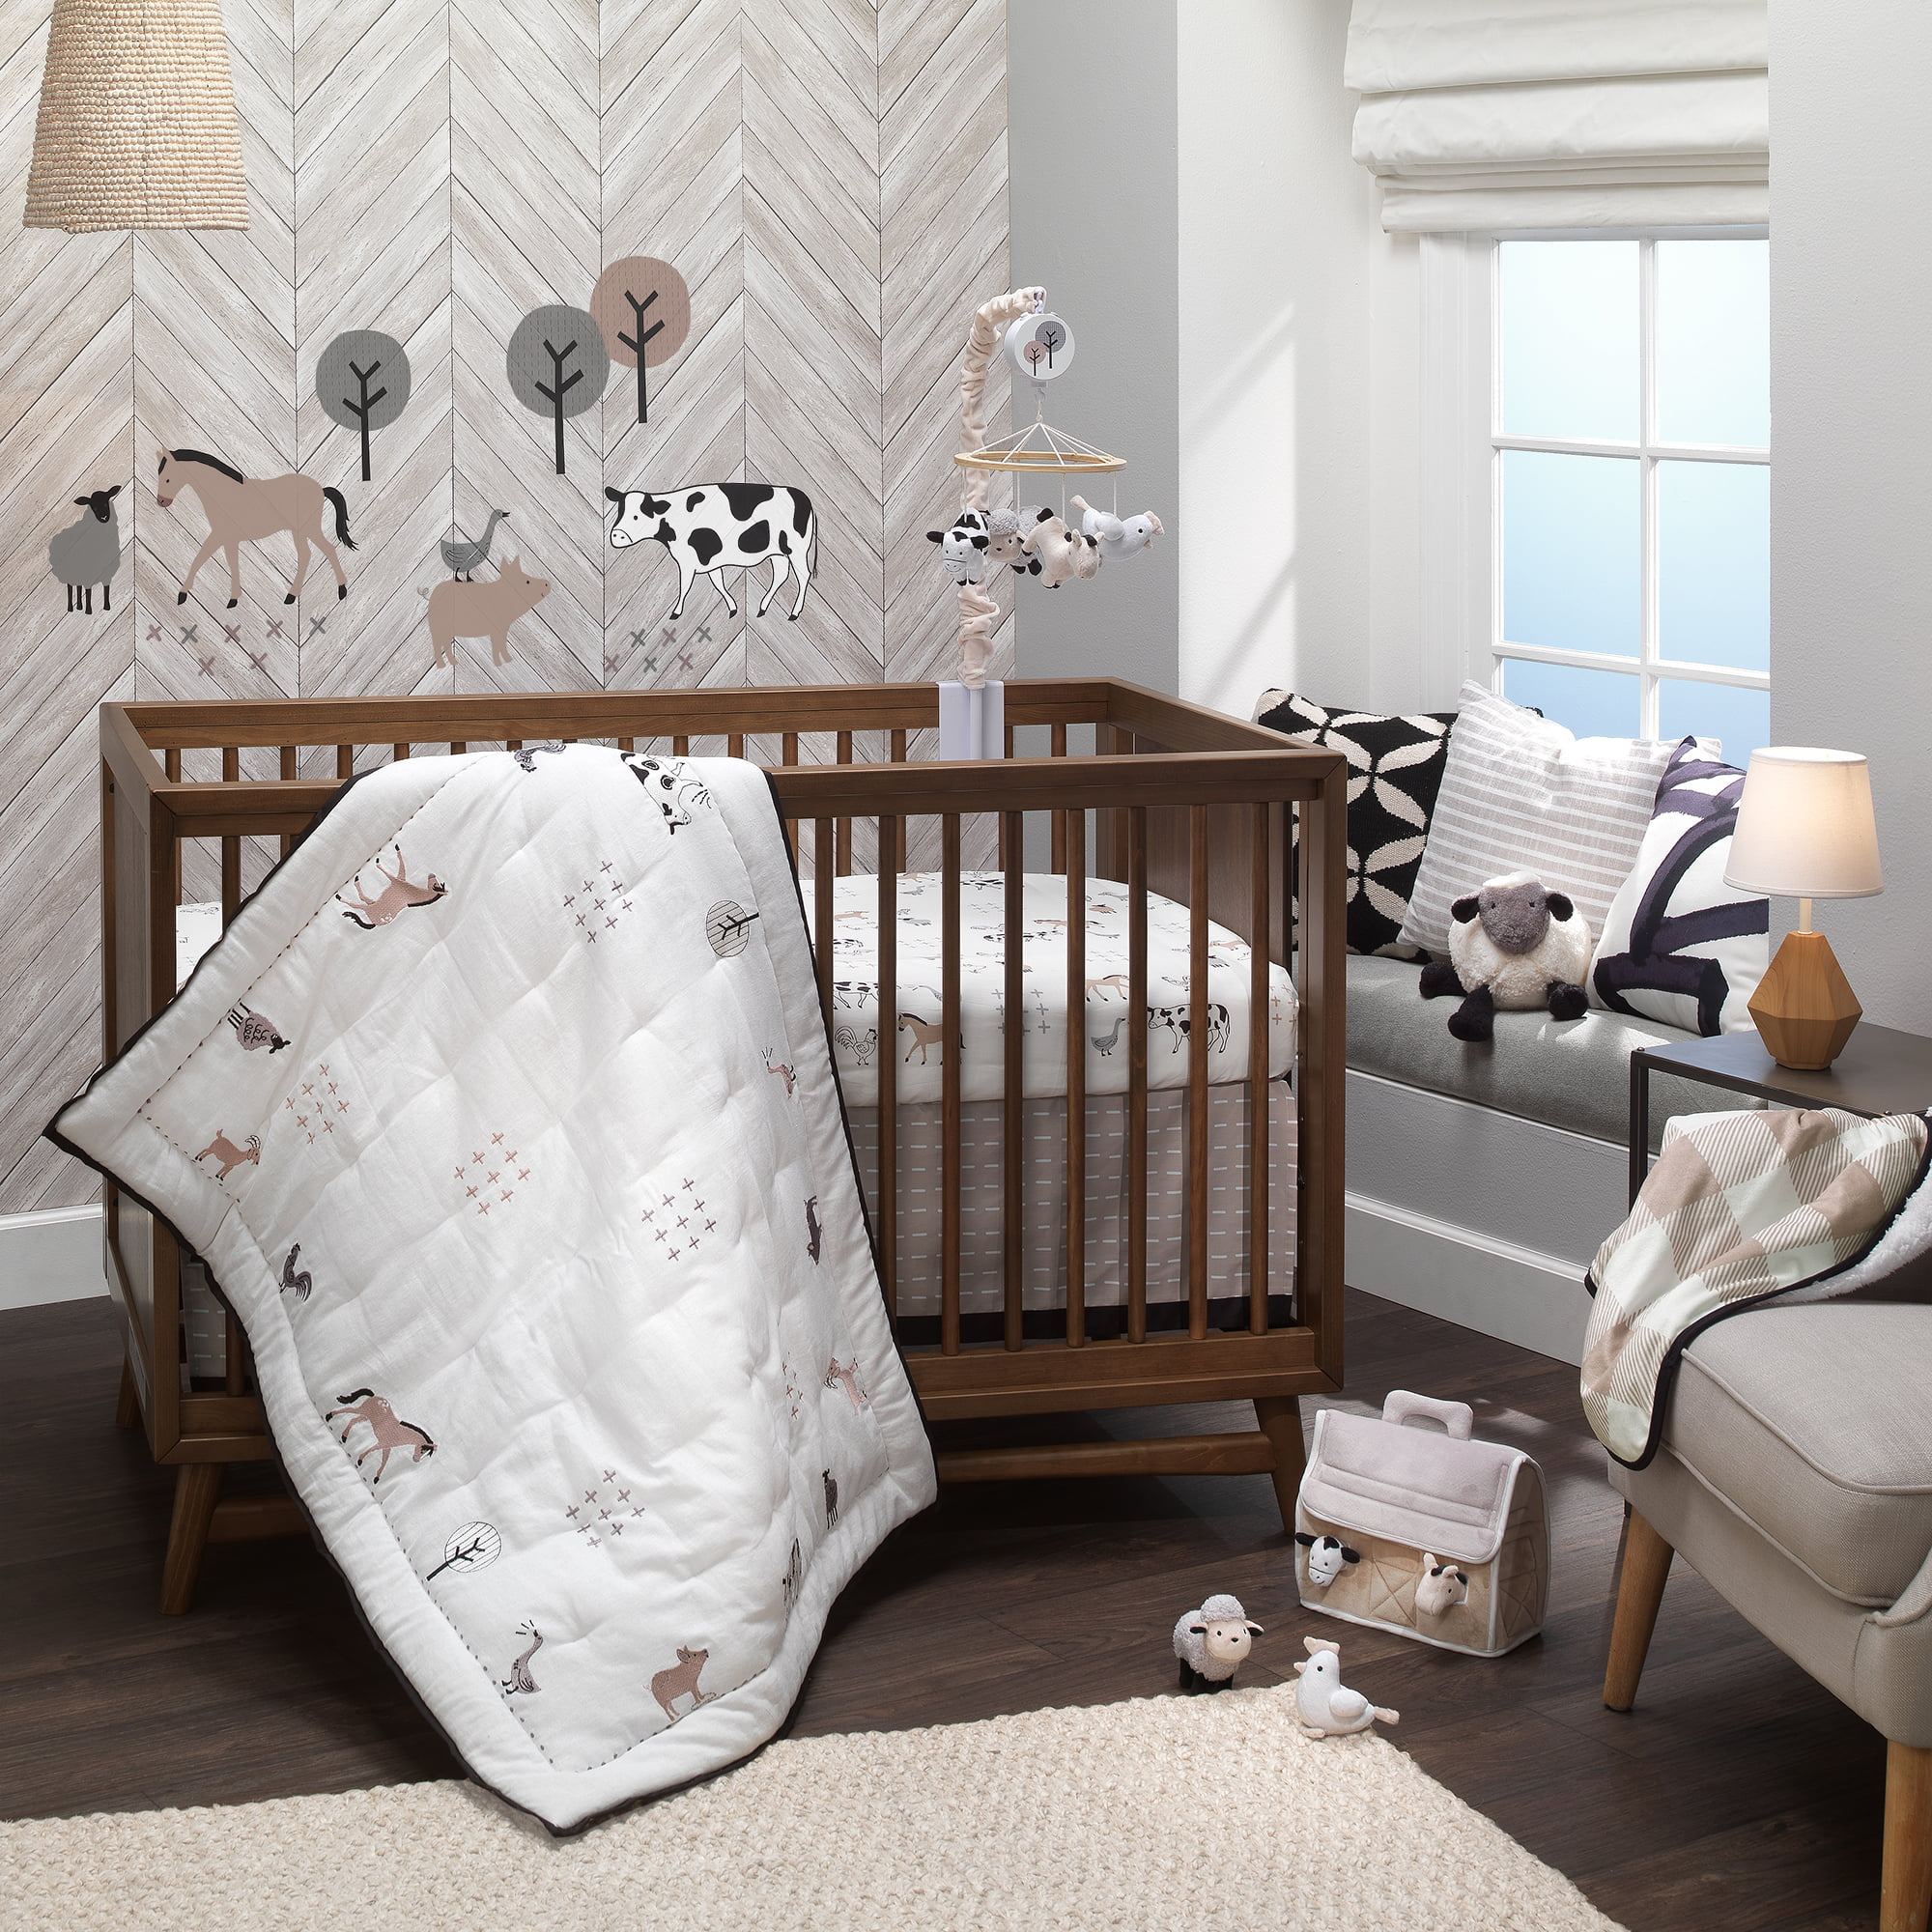 Lambs Ivy Baby Farm Animals 5 Piece Baby Crib Bedding Set White Taupe Walmart Com Walmart Com